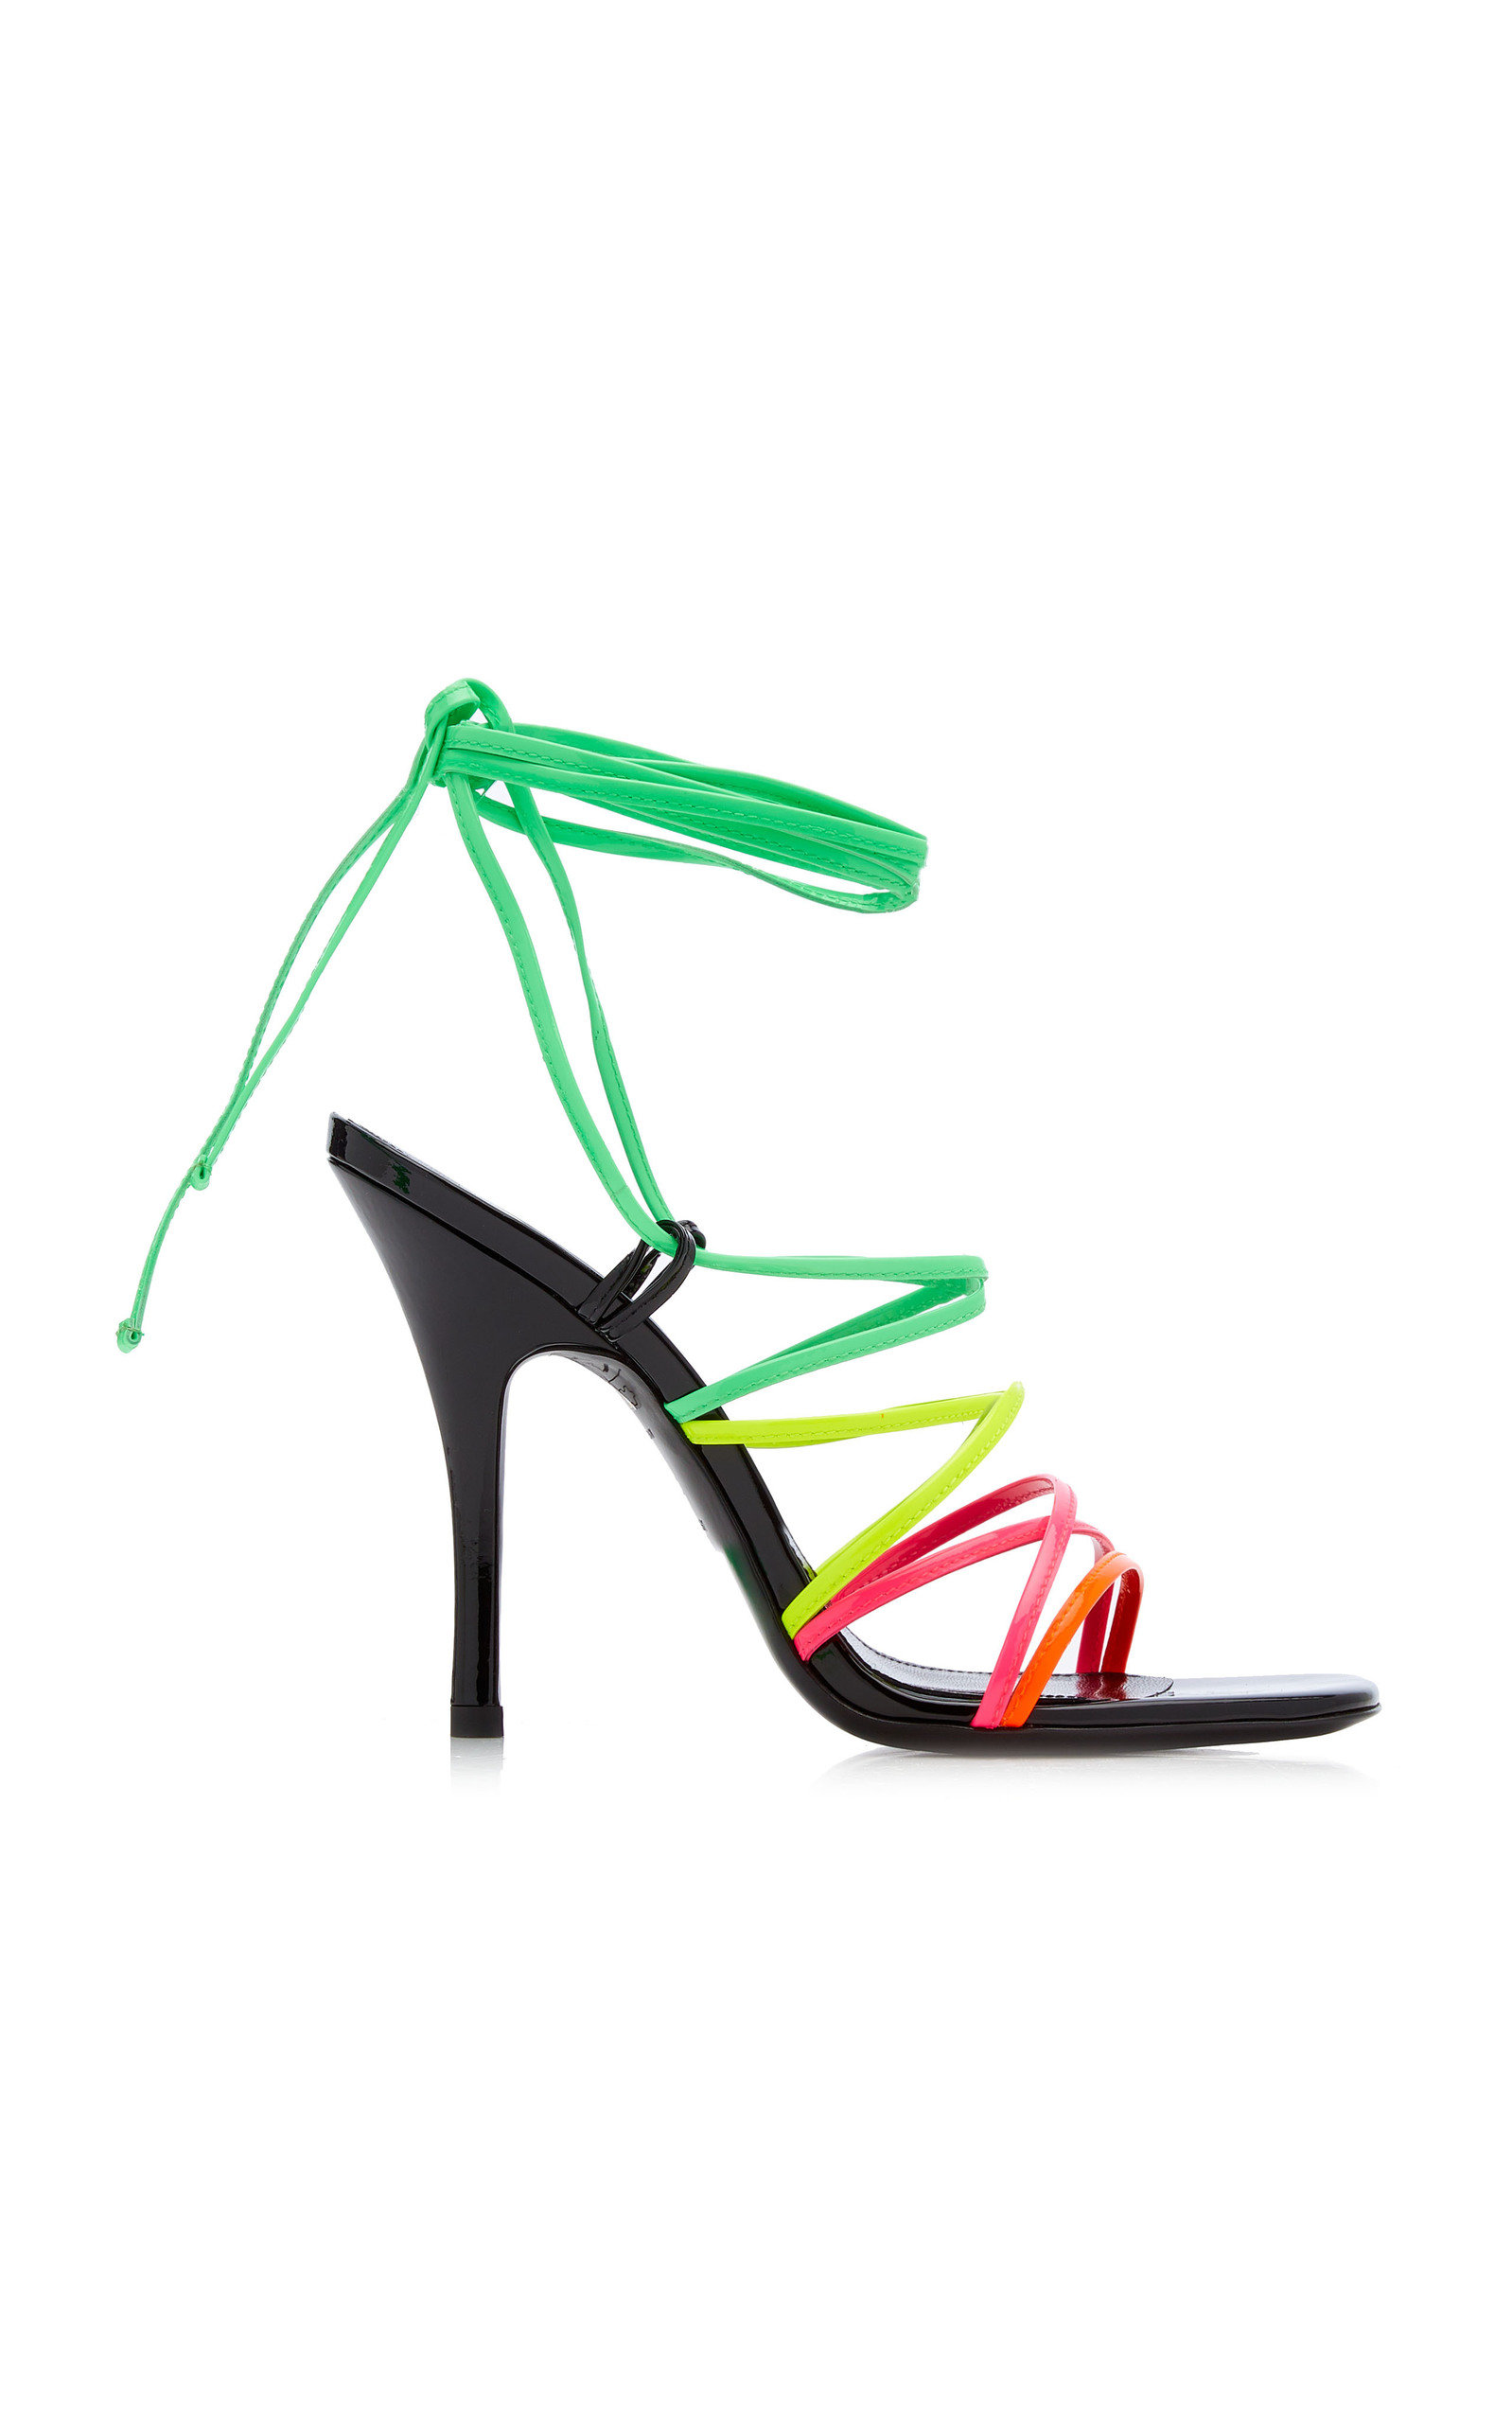 Attico Leathers LACE-UP PATENT LEATHER SANDALS